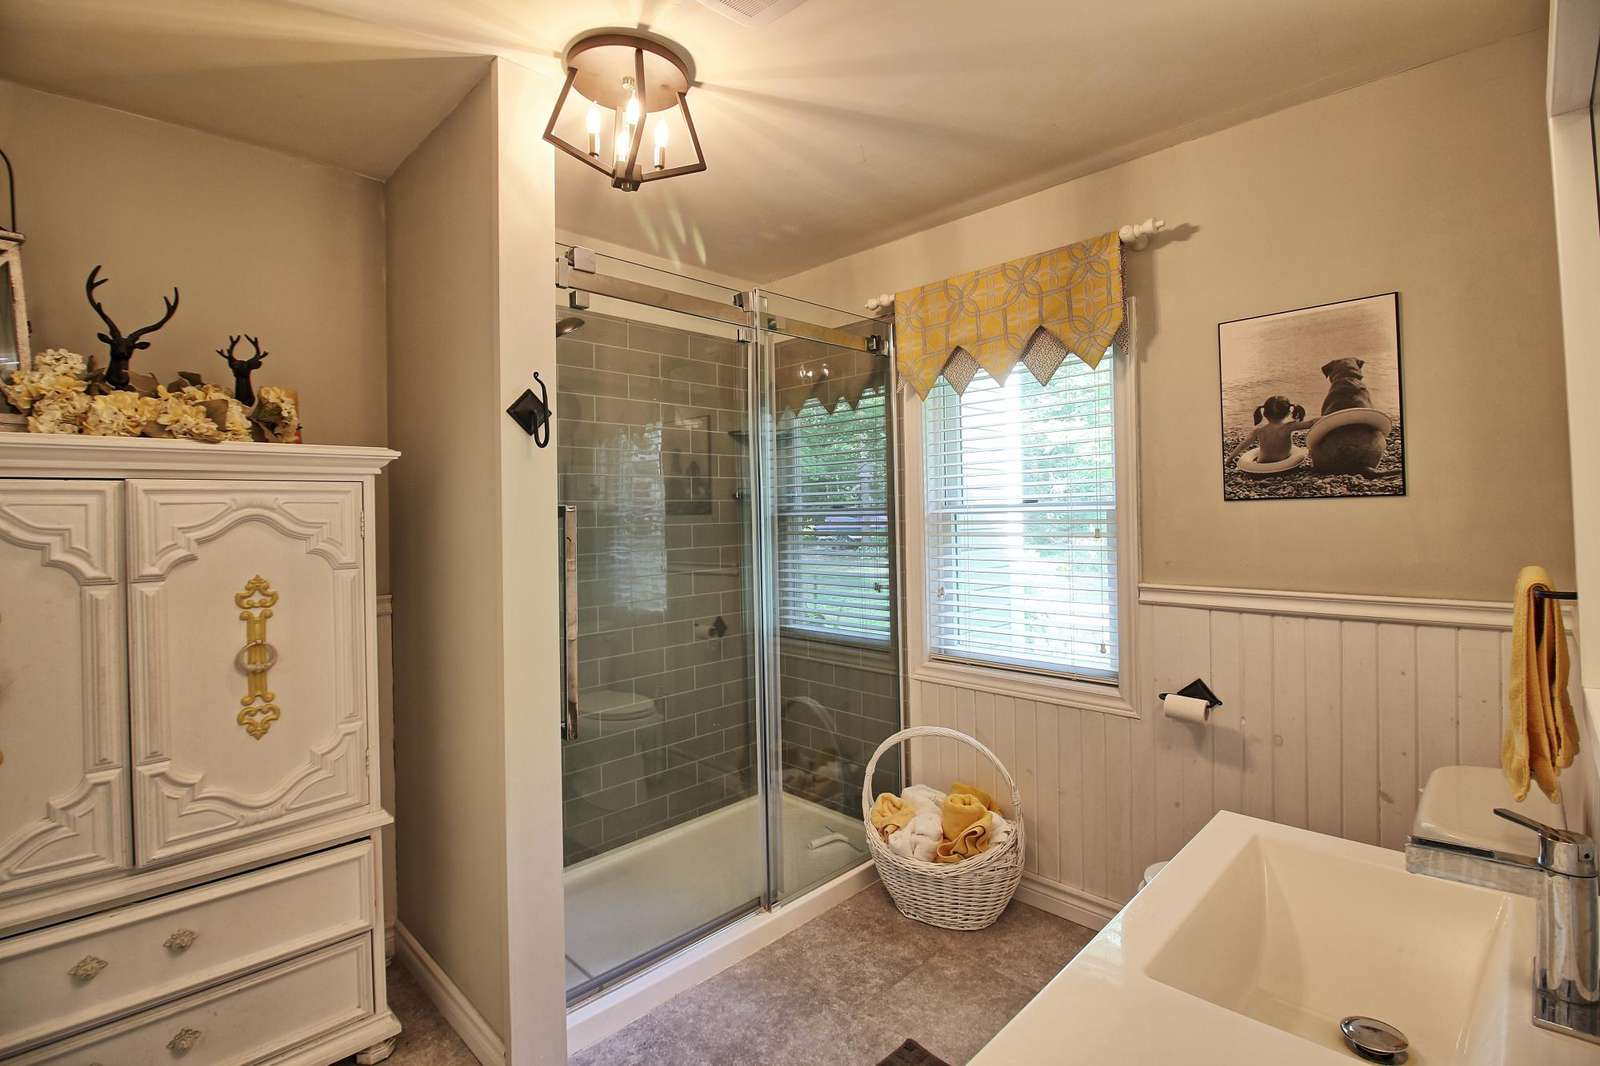 Bathroom 1 - 3-piece with Stand Alone Shower